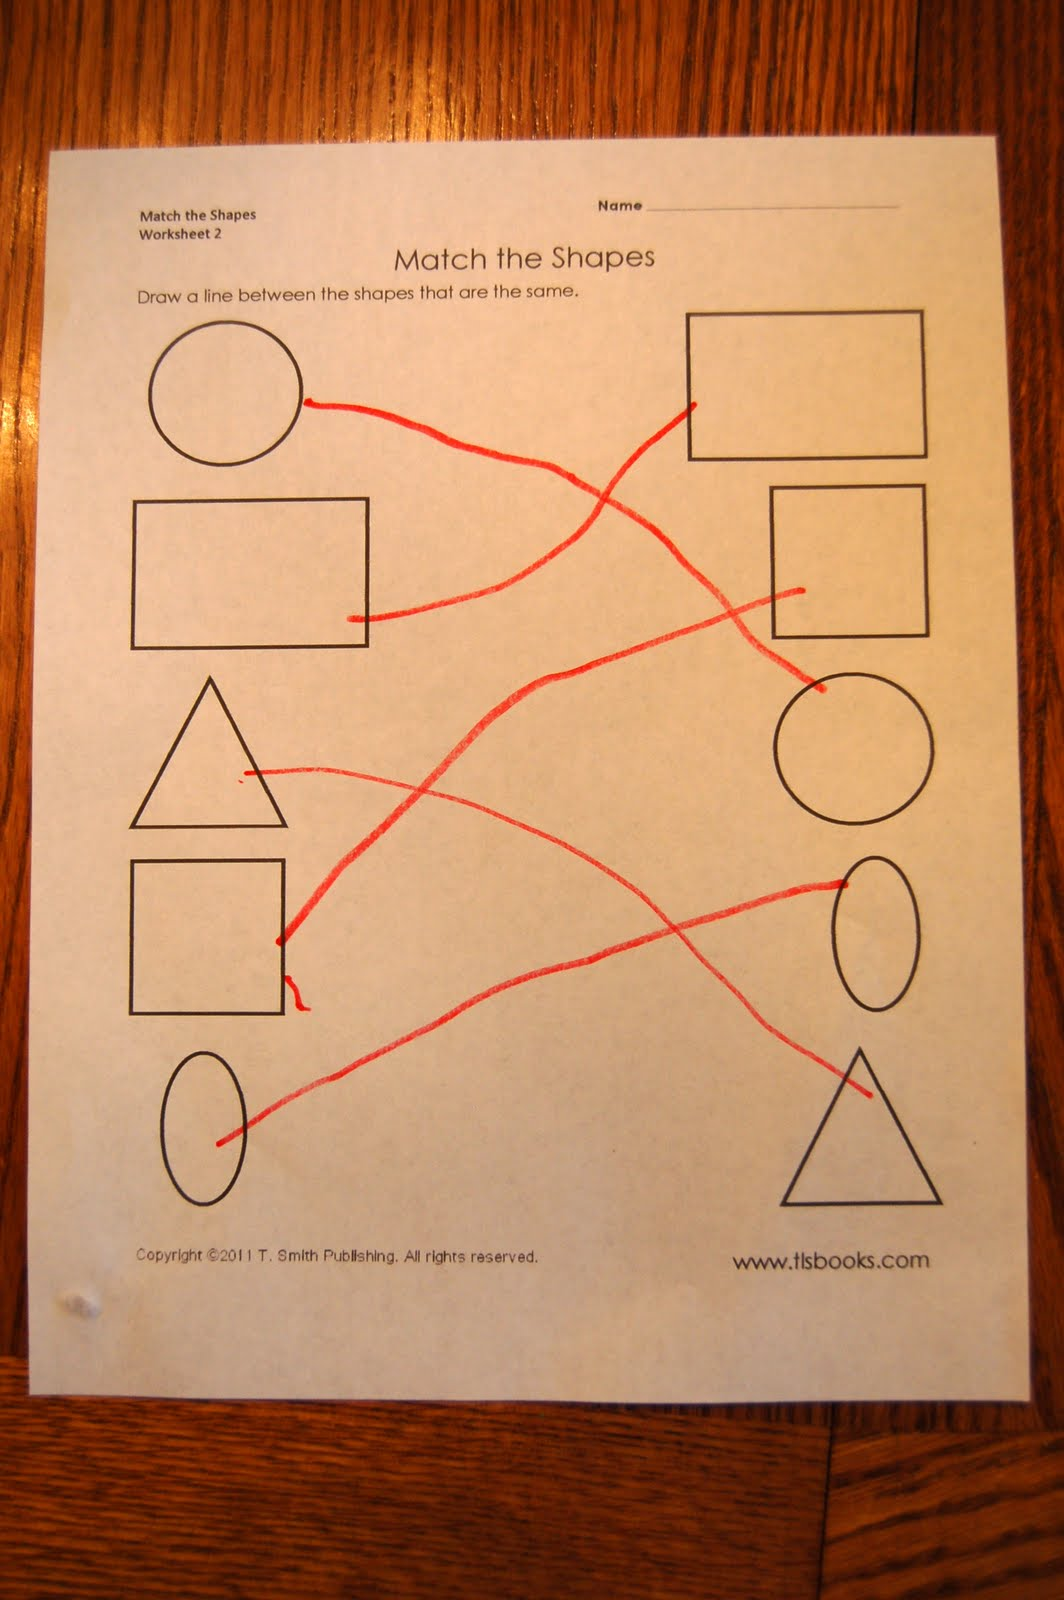 Follow Directions Worksheet For Kids